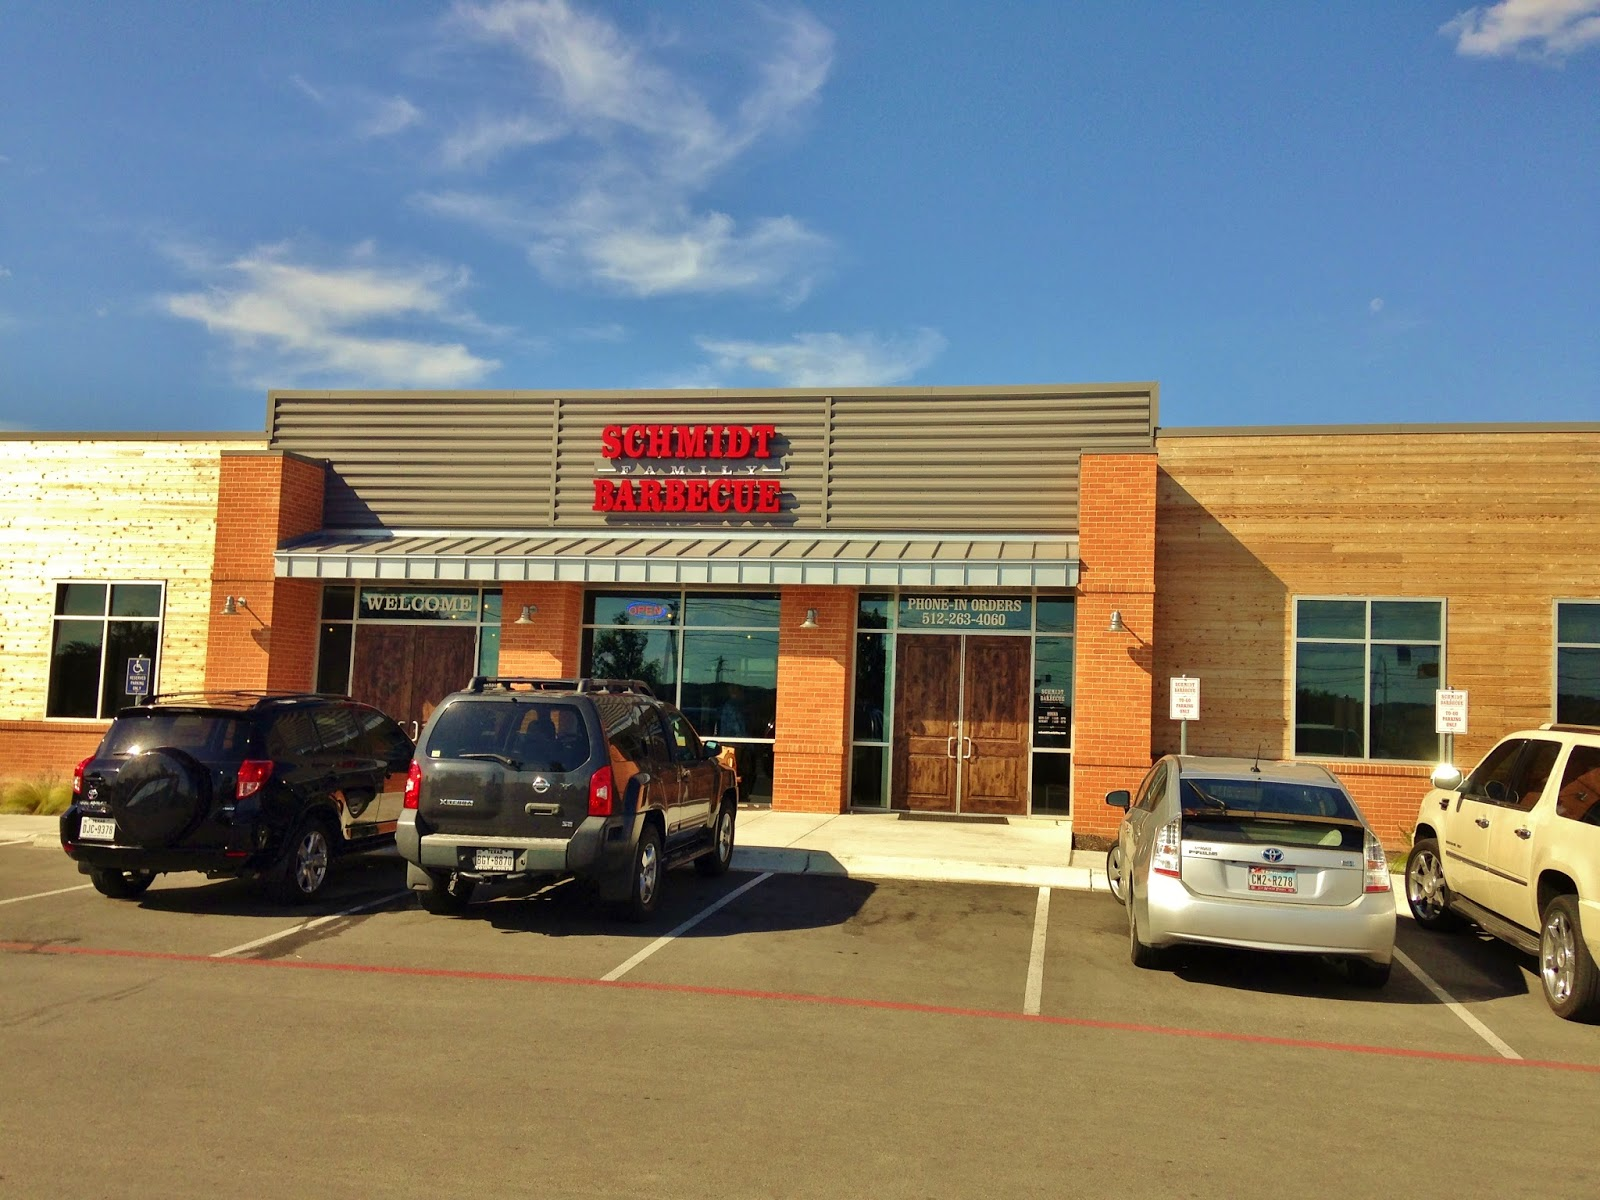 Schmidt Barbecue sits in a brand new building